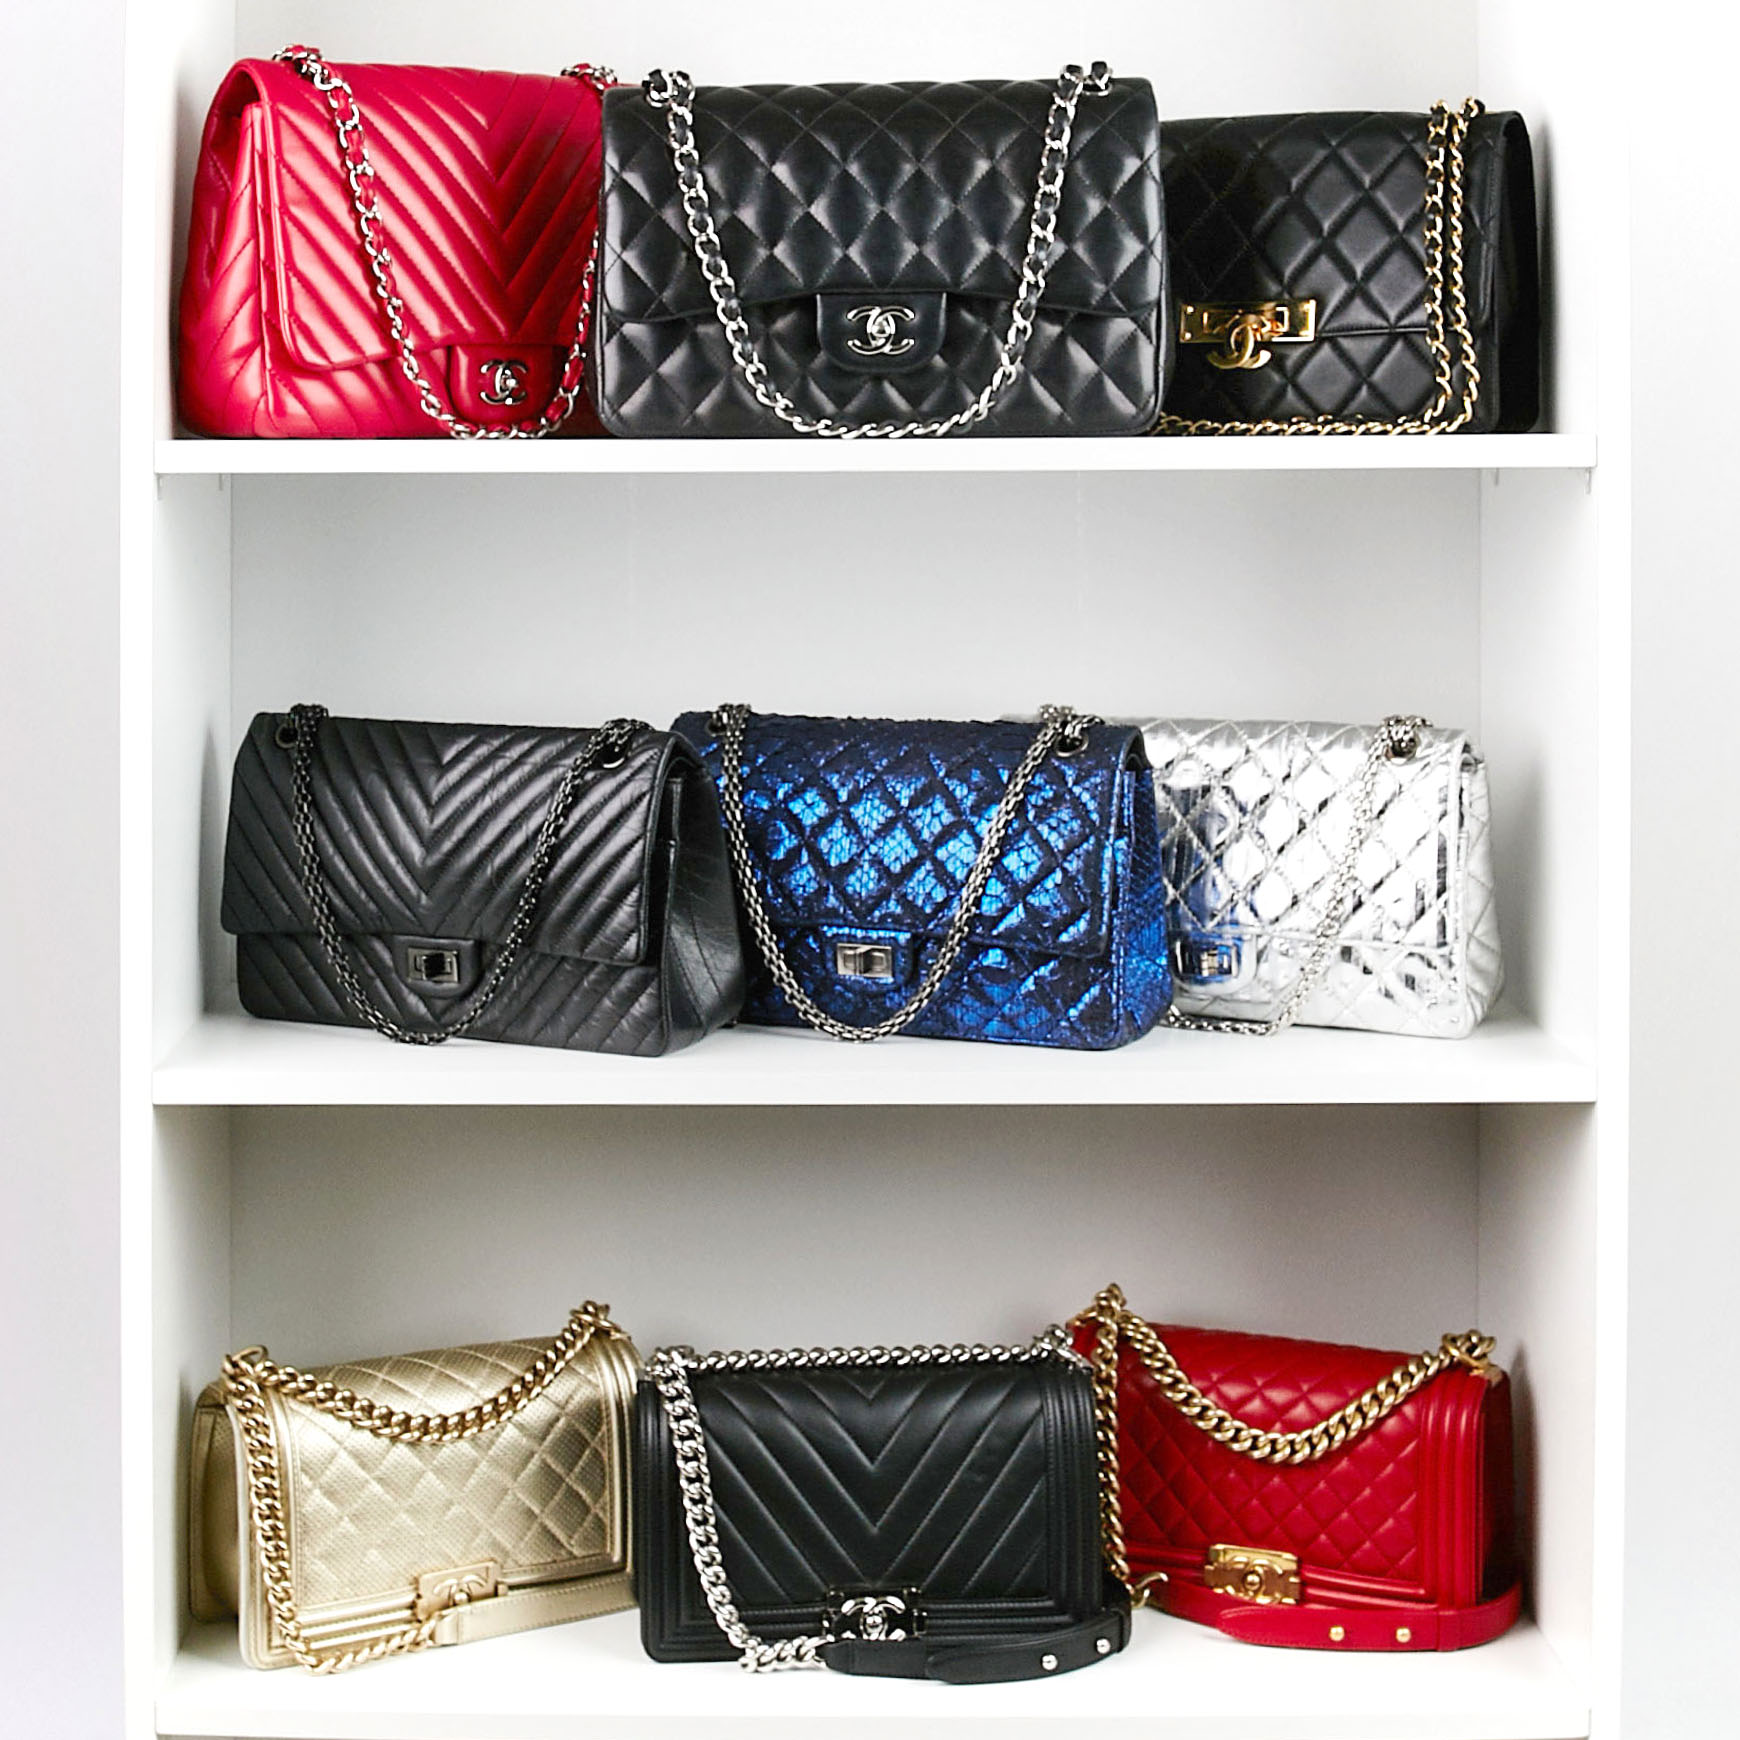 Chanel Handbag Collection Shelfie with Chanel Classic Flap, 2.55 Reissue and Boy Bag | Shop Chanel on Yoogi's Closet, Authenticated Pre-Owned Luxury www.yoogiscloset.com